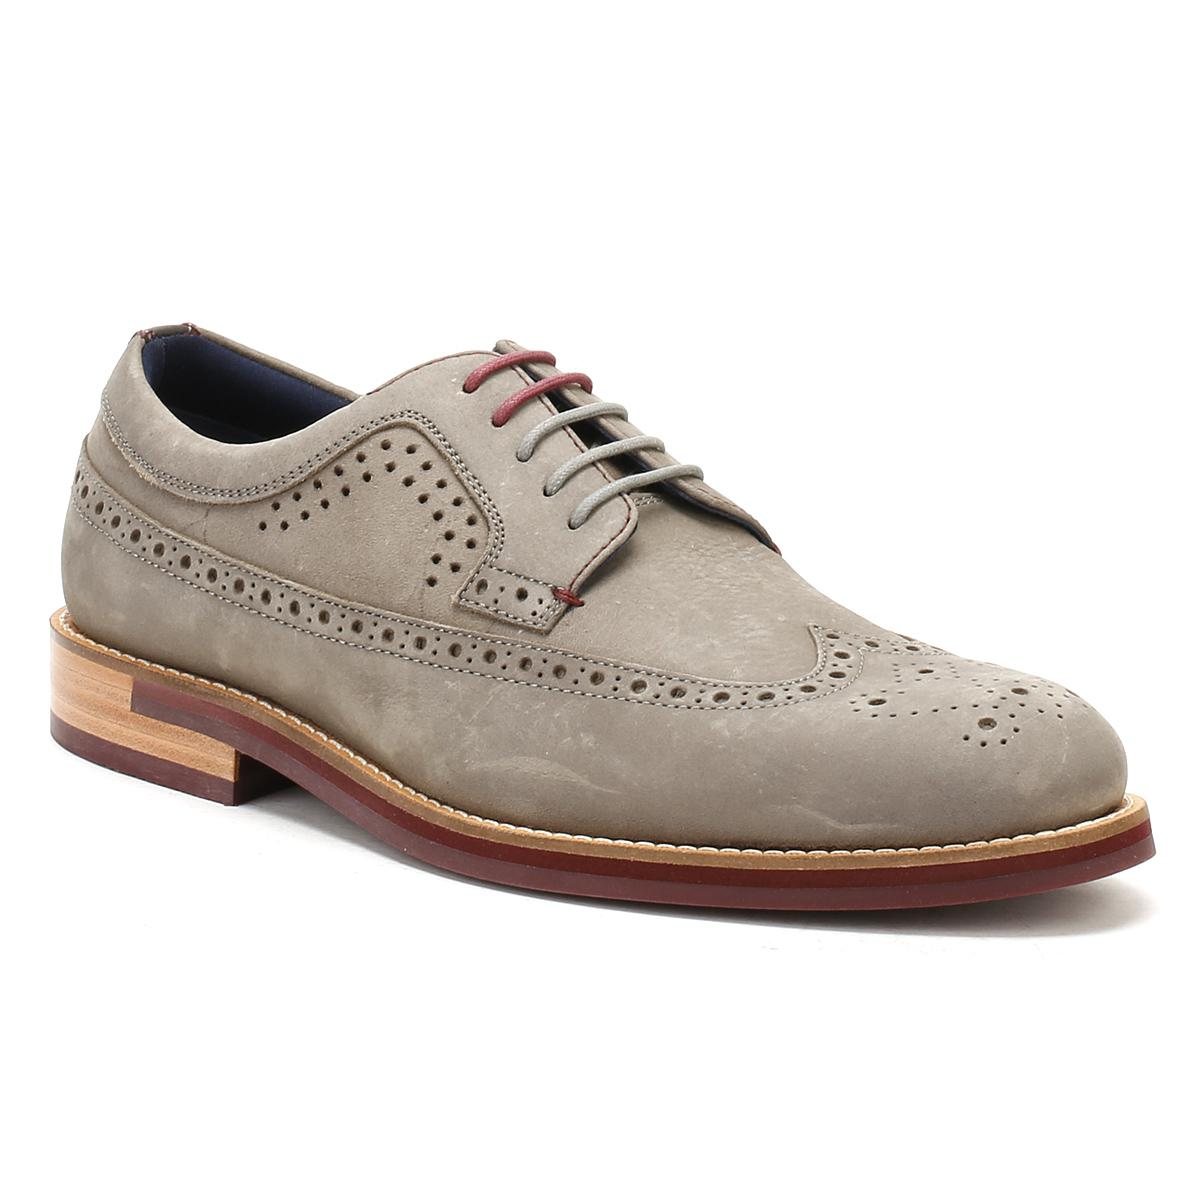 3f6a6af3071b Lyst - Ted Baker Mens Grey Nubuck Fanngo Brogue Shoes in Gray for Men